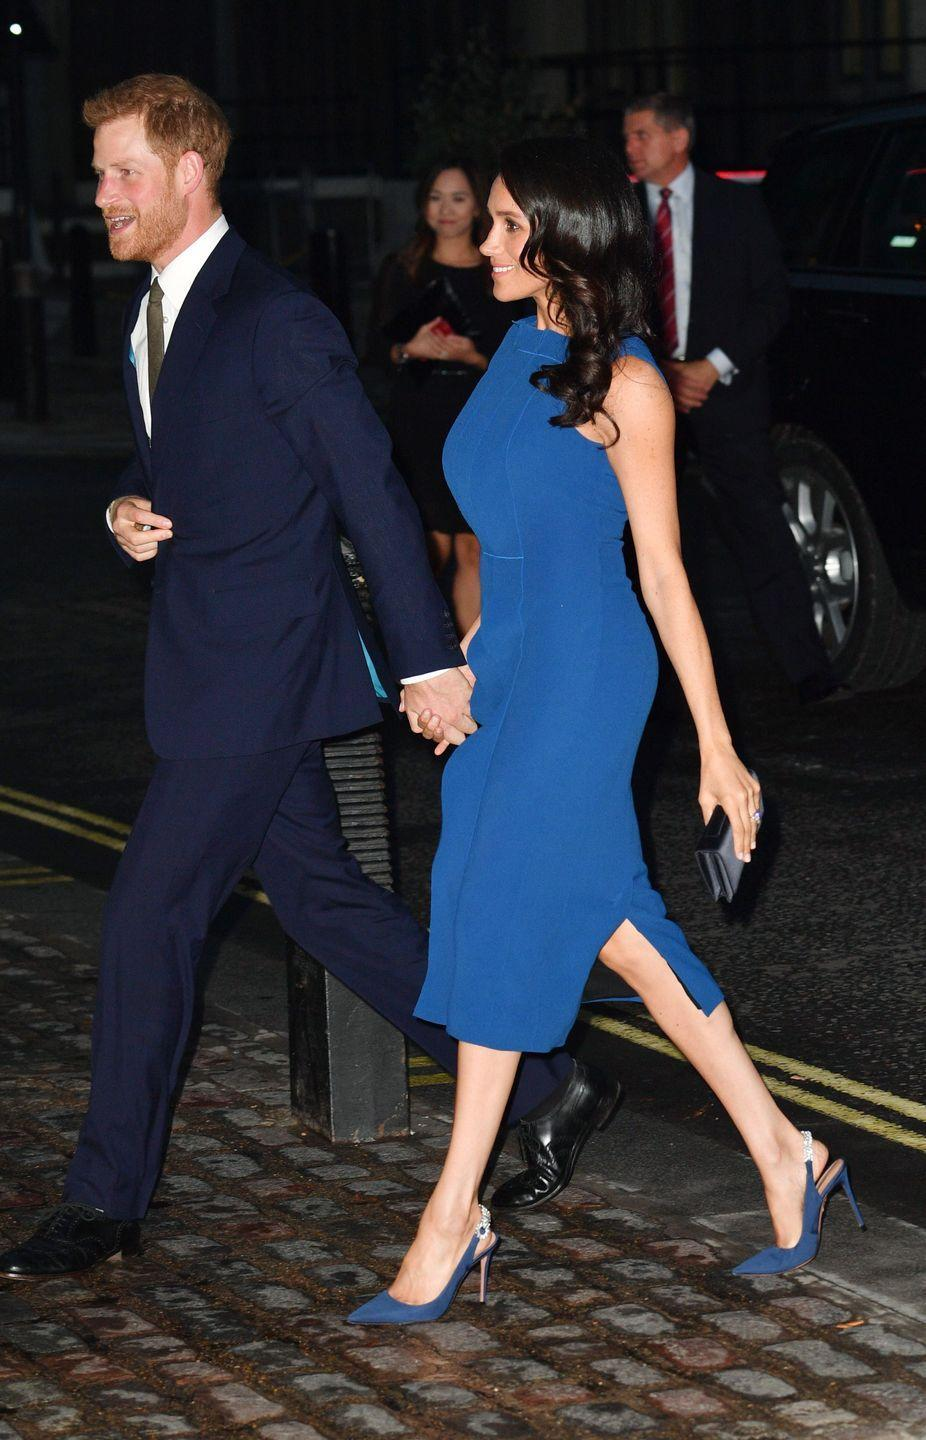 """<p>Meghan Markle <a href=""""https://www.townandcountrymag.com/style/fashion-trends/a22989033/meghan-markle-jason-wu-dress-100-days-to-peace-gala-2018/"""" rel=""""nofollow noopener"""" target=""""_blank"""" data-ylk=""""slk:stepped out"""" class=""""link rapid-noclick-resp"""">stepped out</a> in a navy blue dress by Jason Wu complete with a pair of Aquazzura pumps, a black clutch, and a wavy blow out while attending the <a href=""""https://www.townandcountrymag.com/society/tradition/g22989148/prince-harry-meghan-markle-100-days-to-peace-gala-photos/"""" rel=""""nofollow noopener"""" target=""""_blank"""" data-ylk=""""slk:100 Days of Peace Gala"""" class=""""link rapid-noclick-resp"""">100 Days of Peace Gala</a>.</p>"""